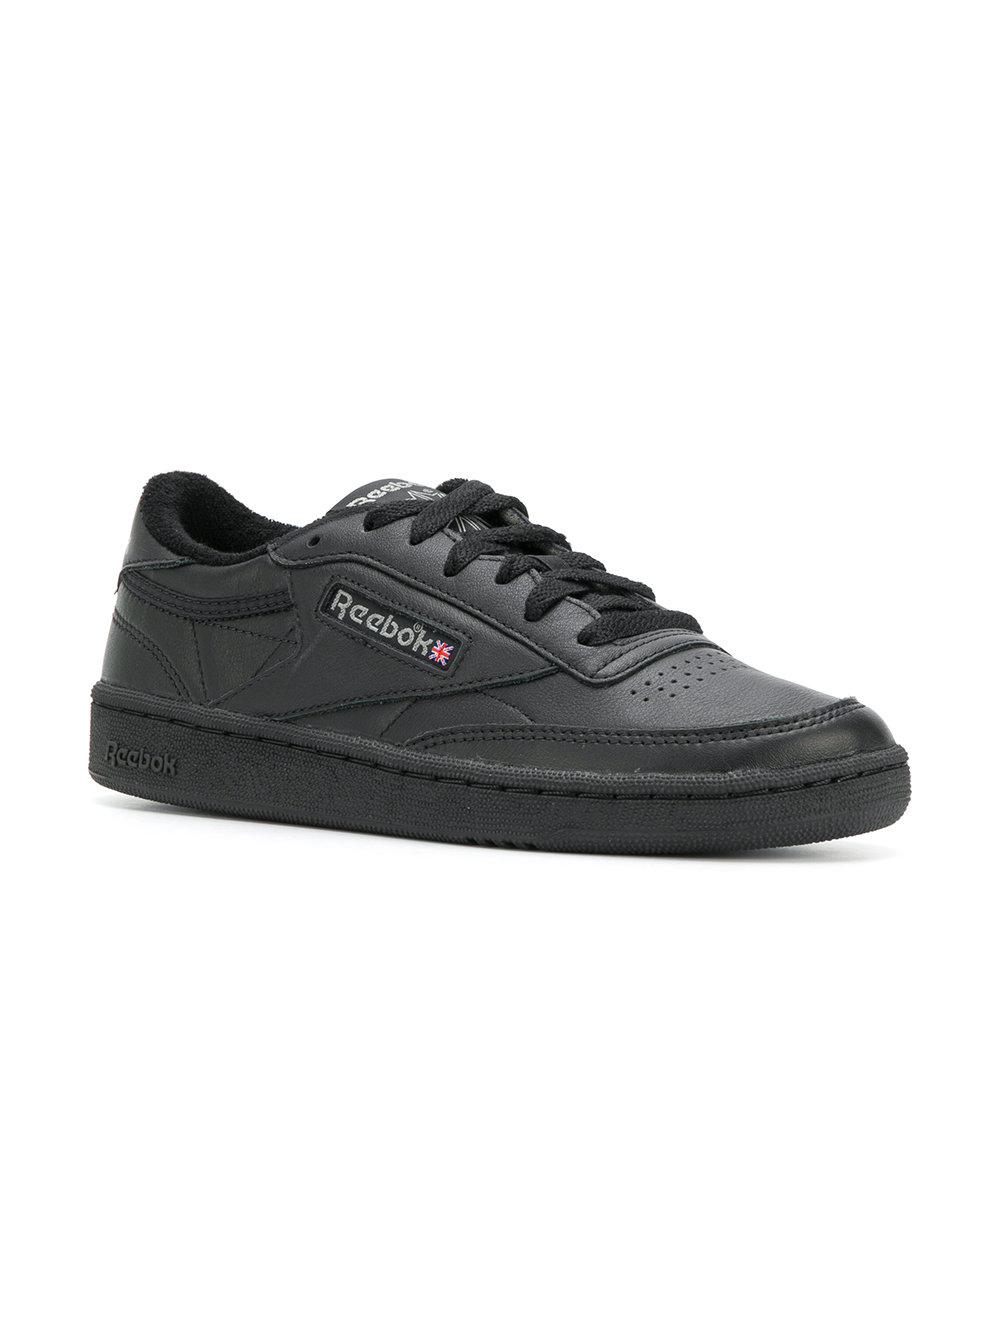 new concept 53184 2aab0 reebok-Black-Casual-Lace-up-Sneakers.jpeg